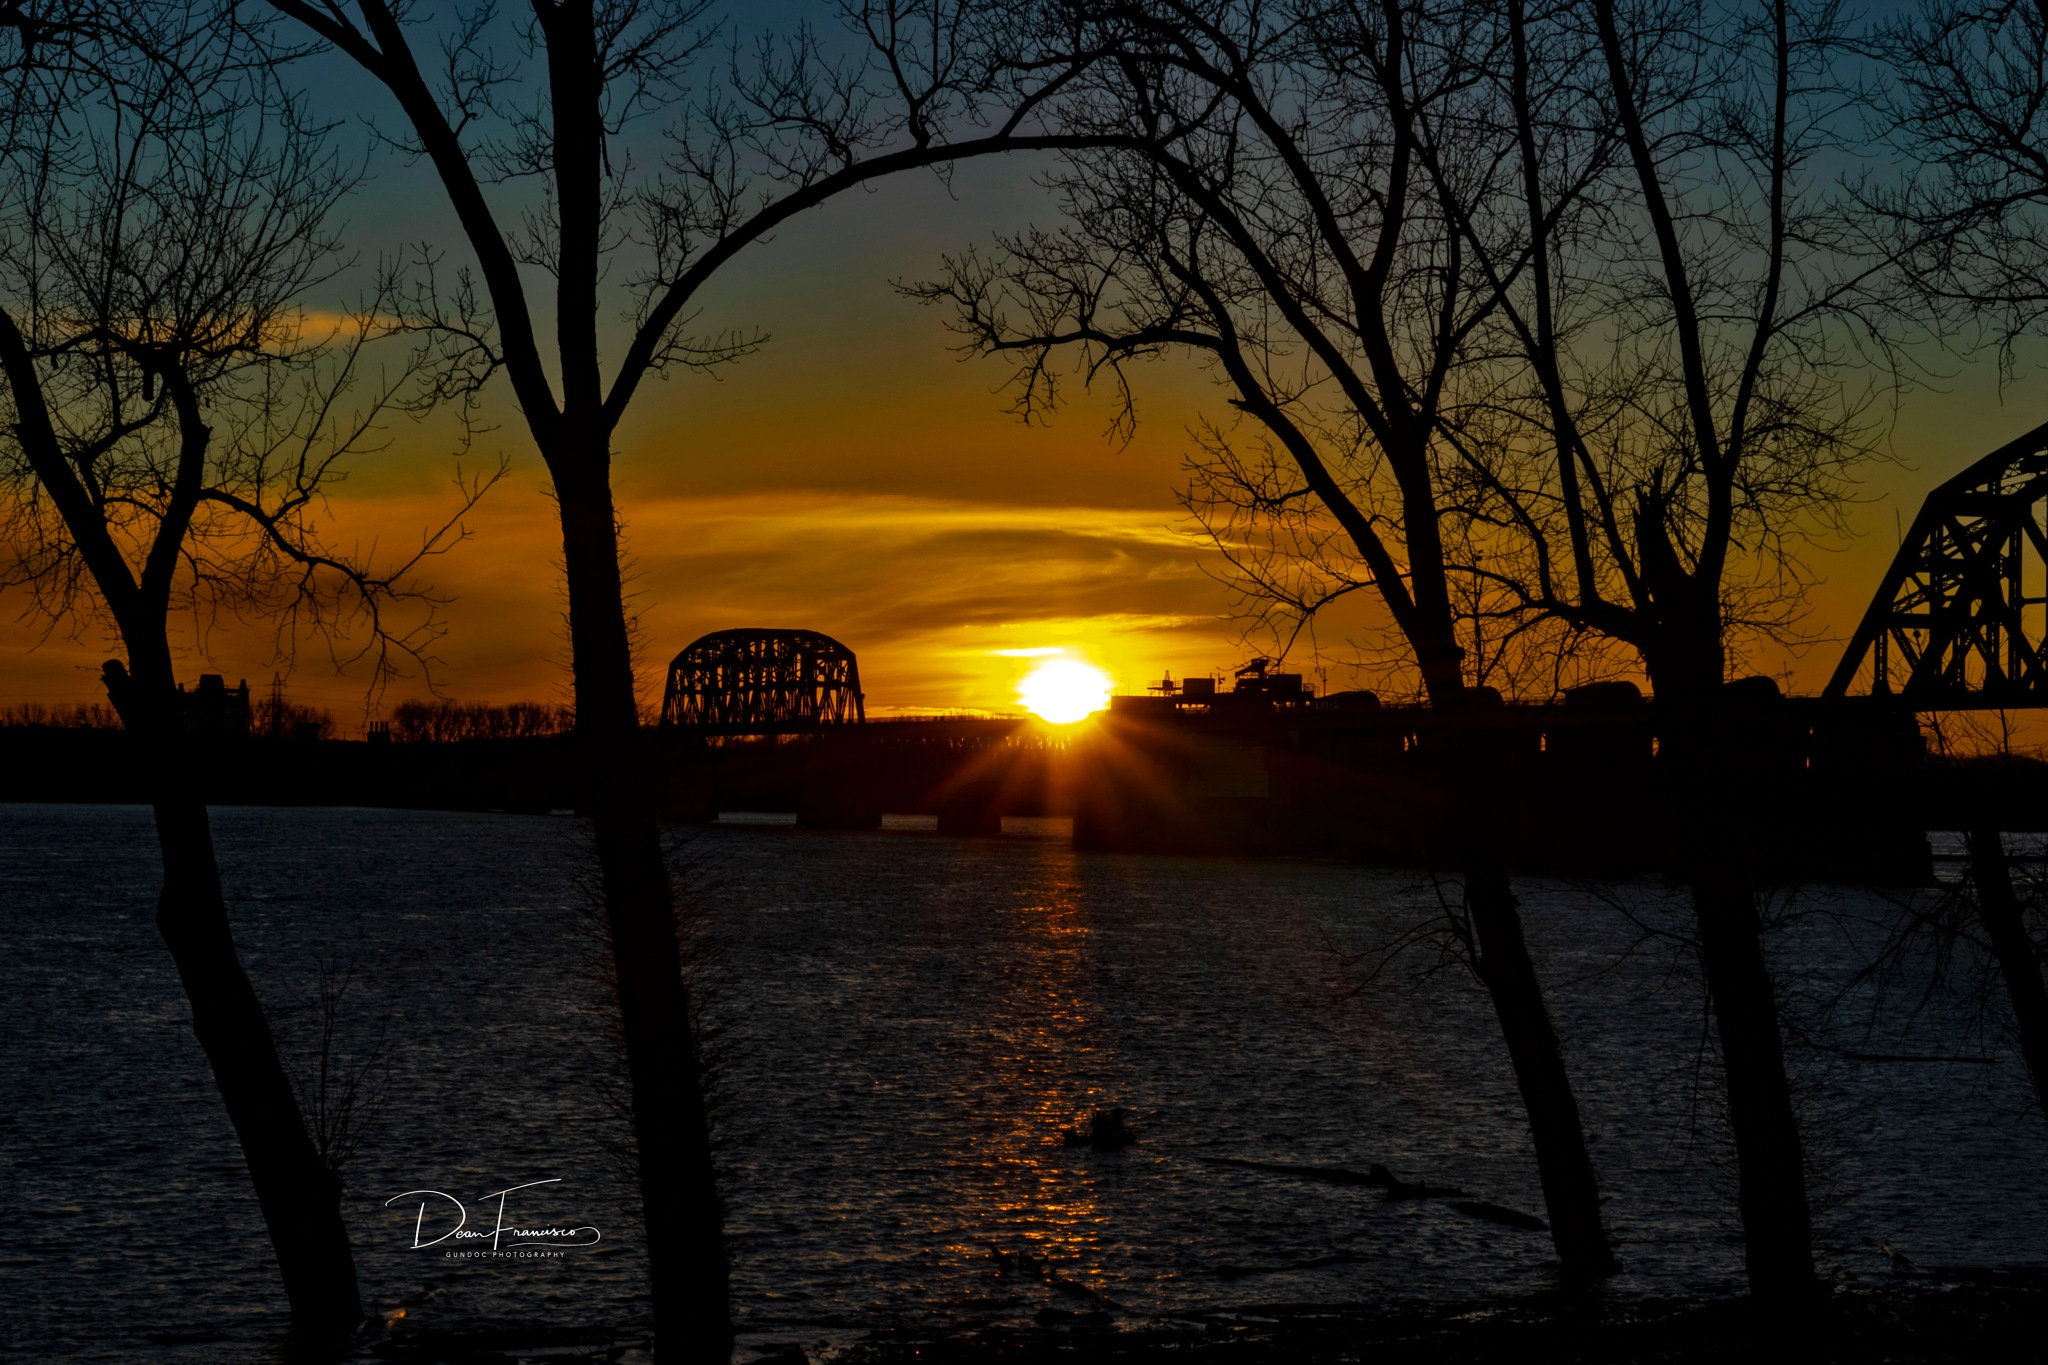 Sunset at the bridge by Dean Francisco